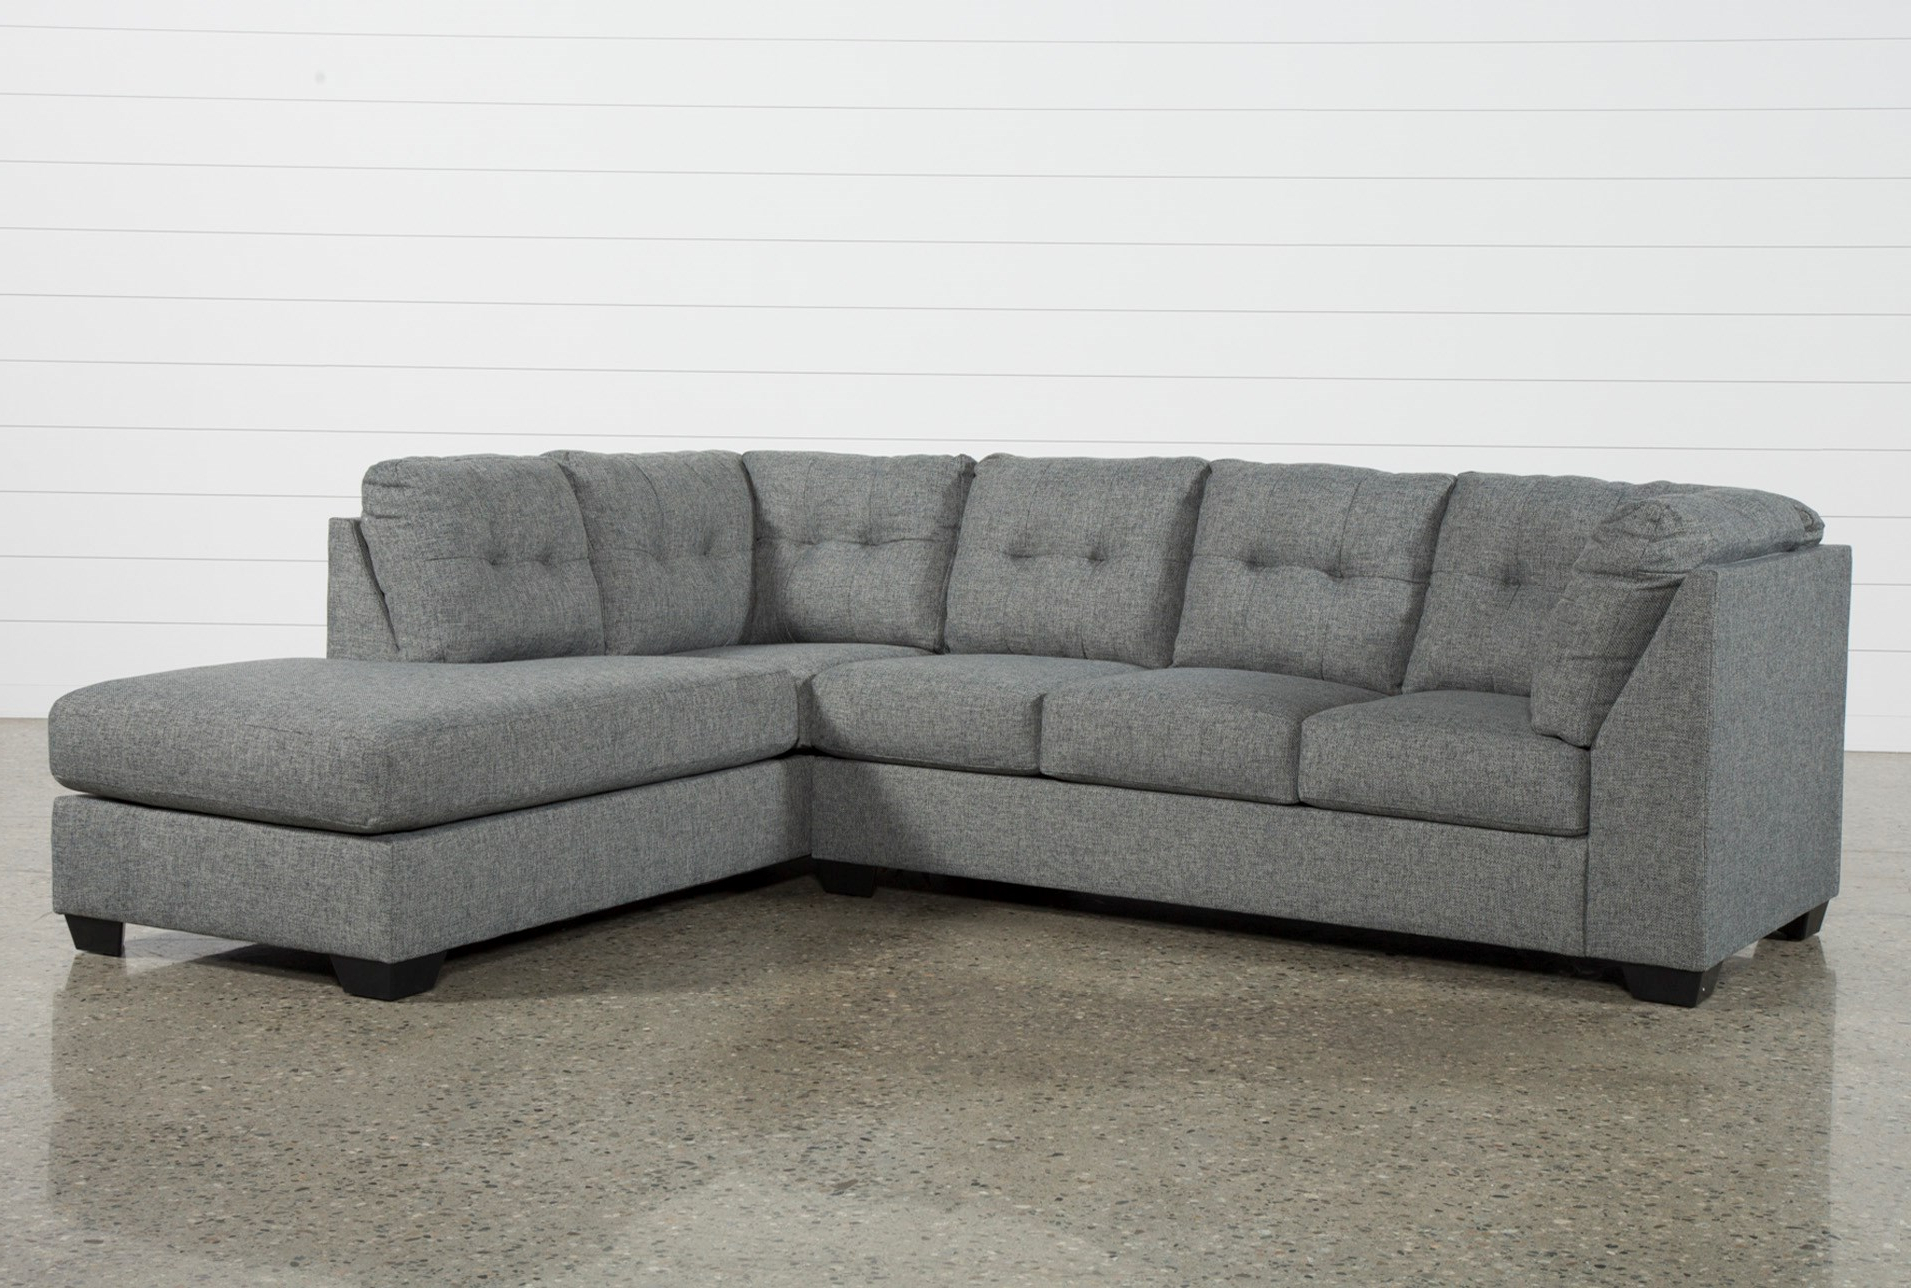 Most Current Lucy Grey 2 Piece Sleeper Sectionals With Laf Chaise Regarding Sleeper Sectional With Chaise – Tidex (View 10 of 20)